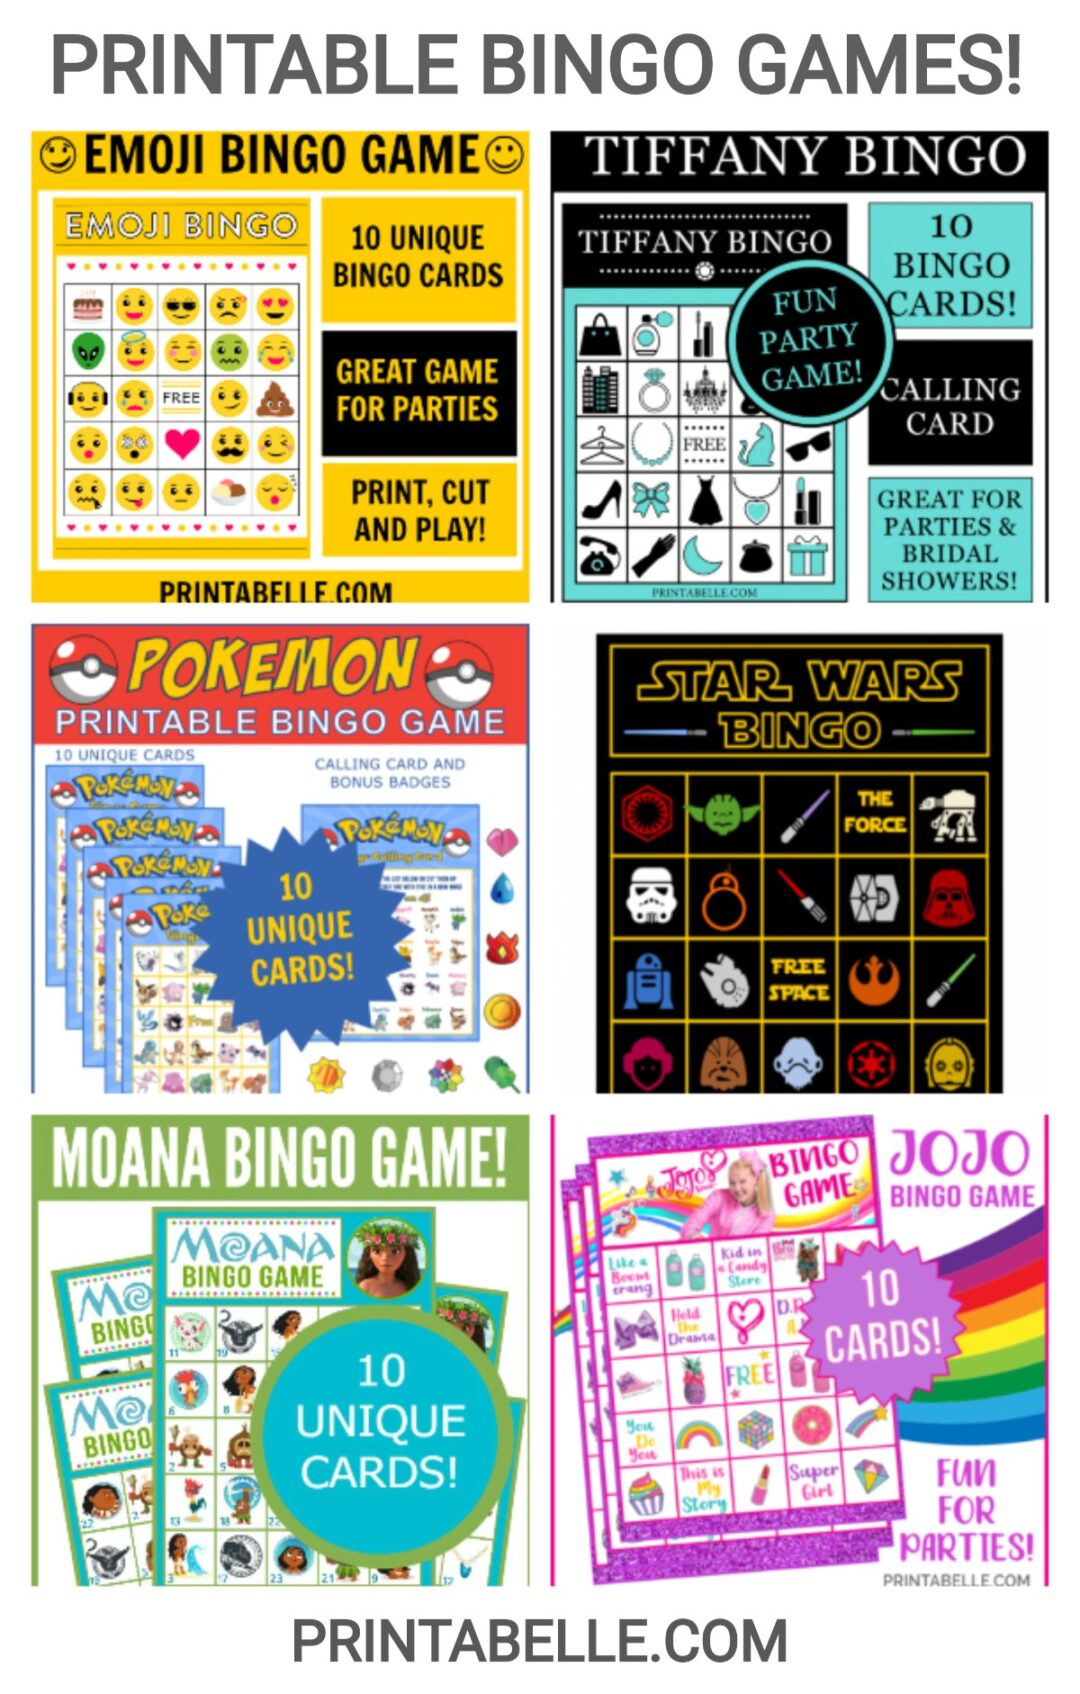 Bingo Games Printable for Birthdays, Bridal and Baby Showers!